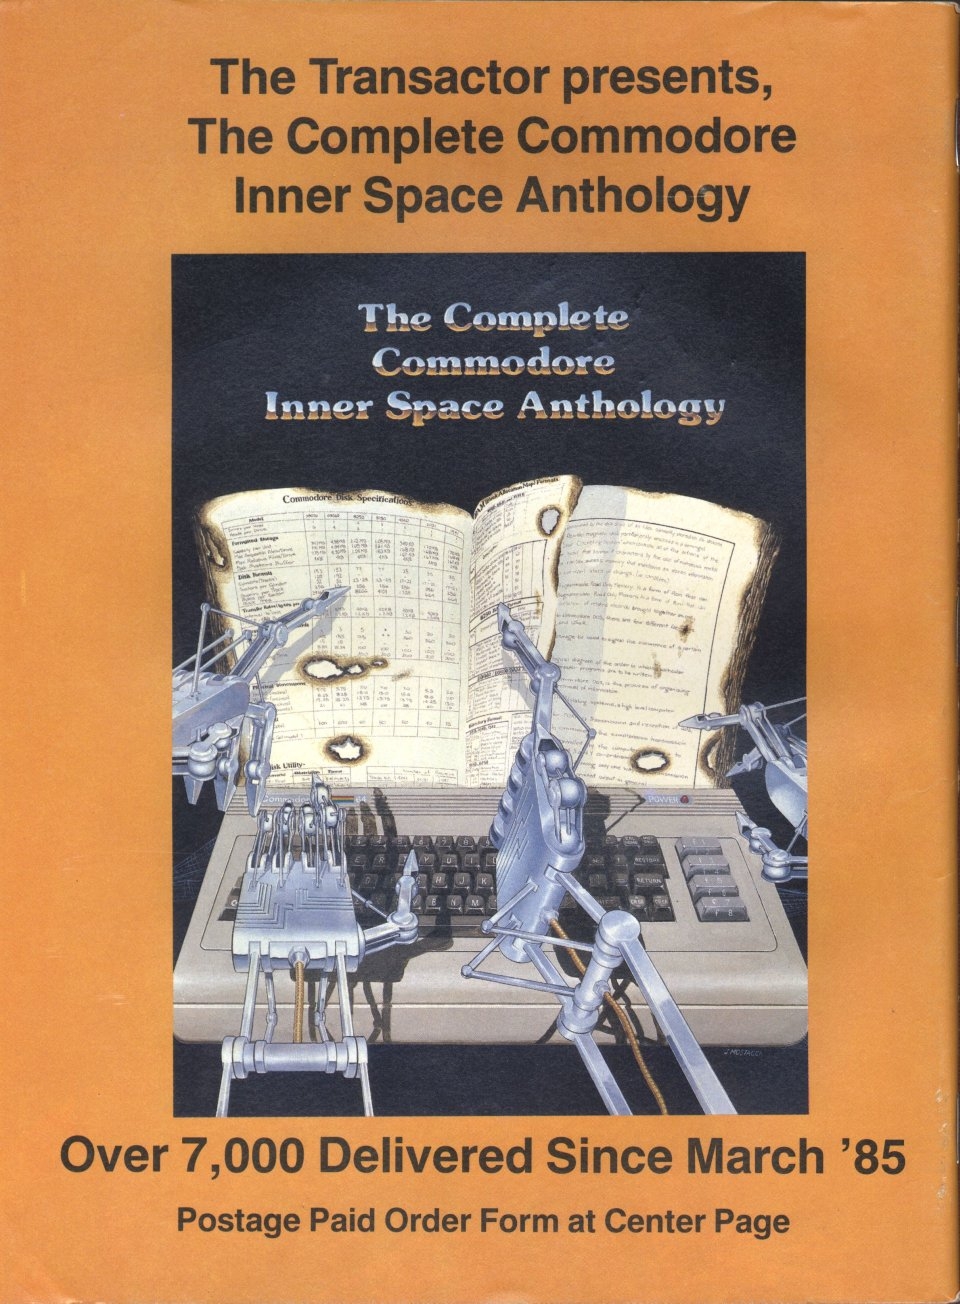 [Advertisement: The Complete Commodore Inner Space Anthology, Over 7,000 Delivered Since March '85]